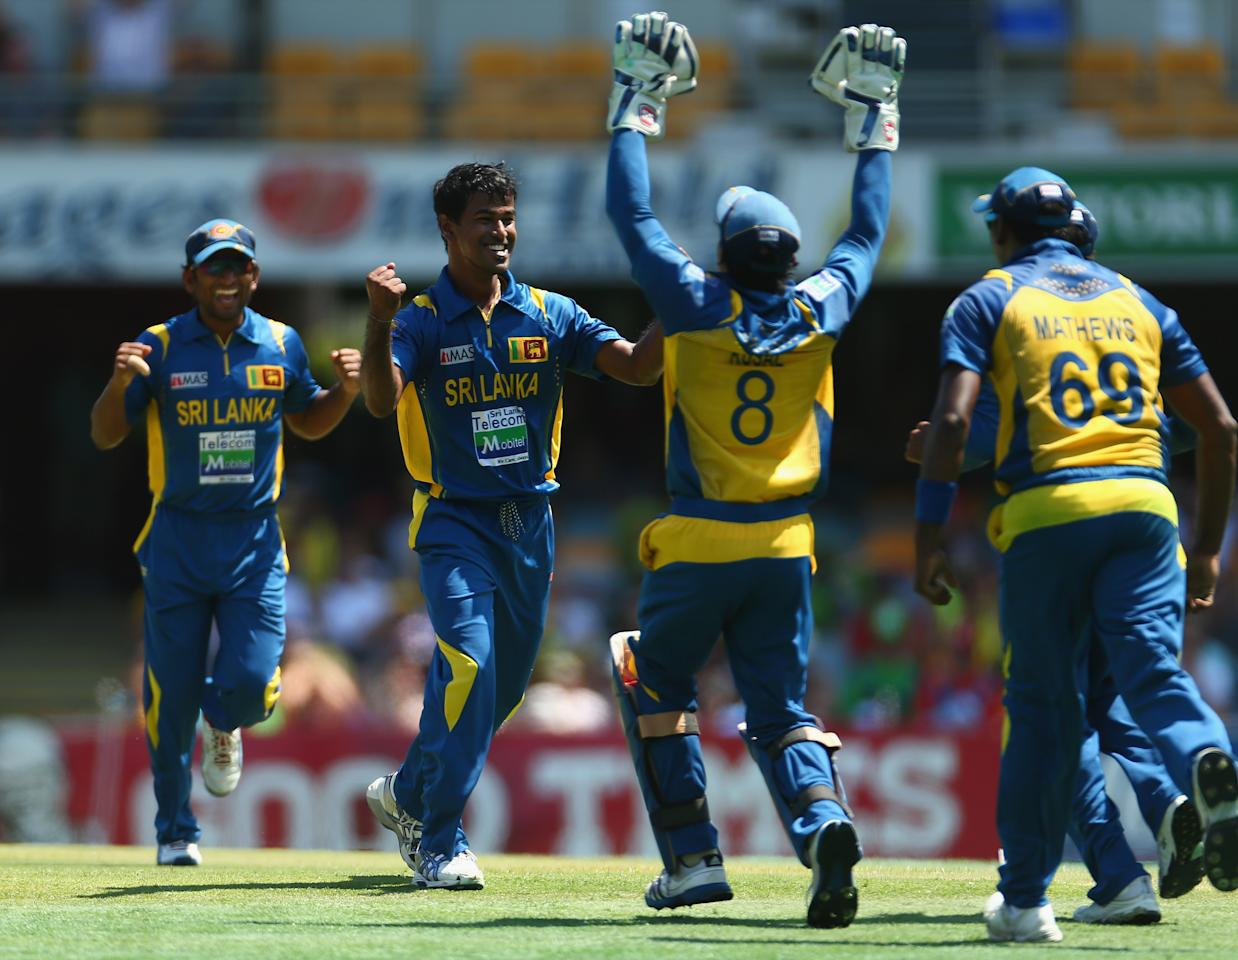 BRISBANE, AUSTRALIA - JANUARY 18:  Nuwan Kulasekara of Sri Lanka celebrates taking the wicket of George Bailey of Australia during game three of the Commonwealth Bank One Day International Series between Australia and Sri Lanka at The Gabba on January 18, 2013 in Brisbane, Australia.  (Photo by Robert Cianflone/Getty Images)